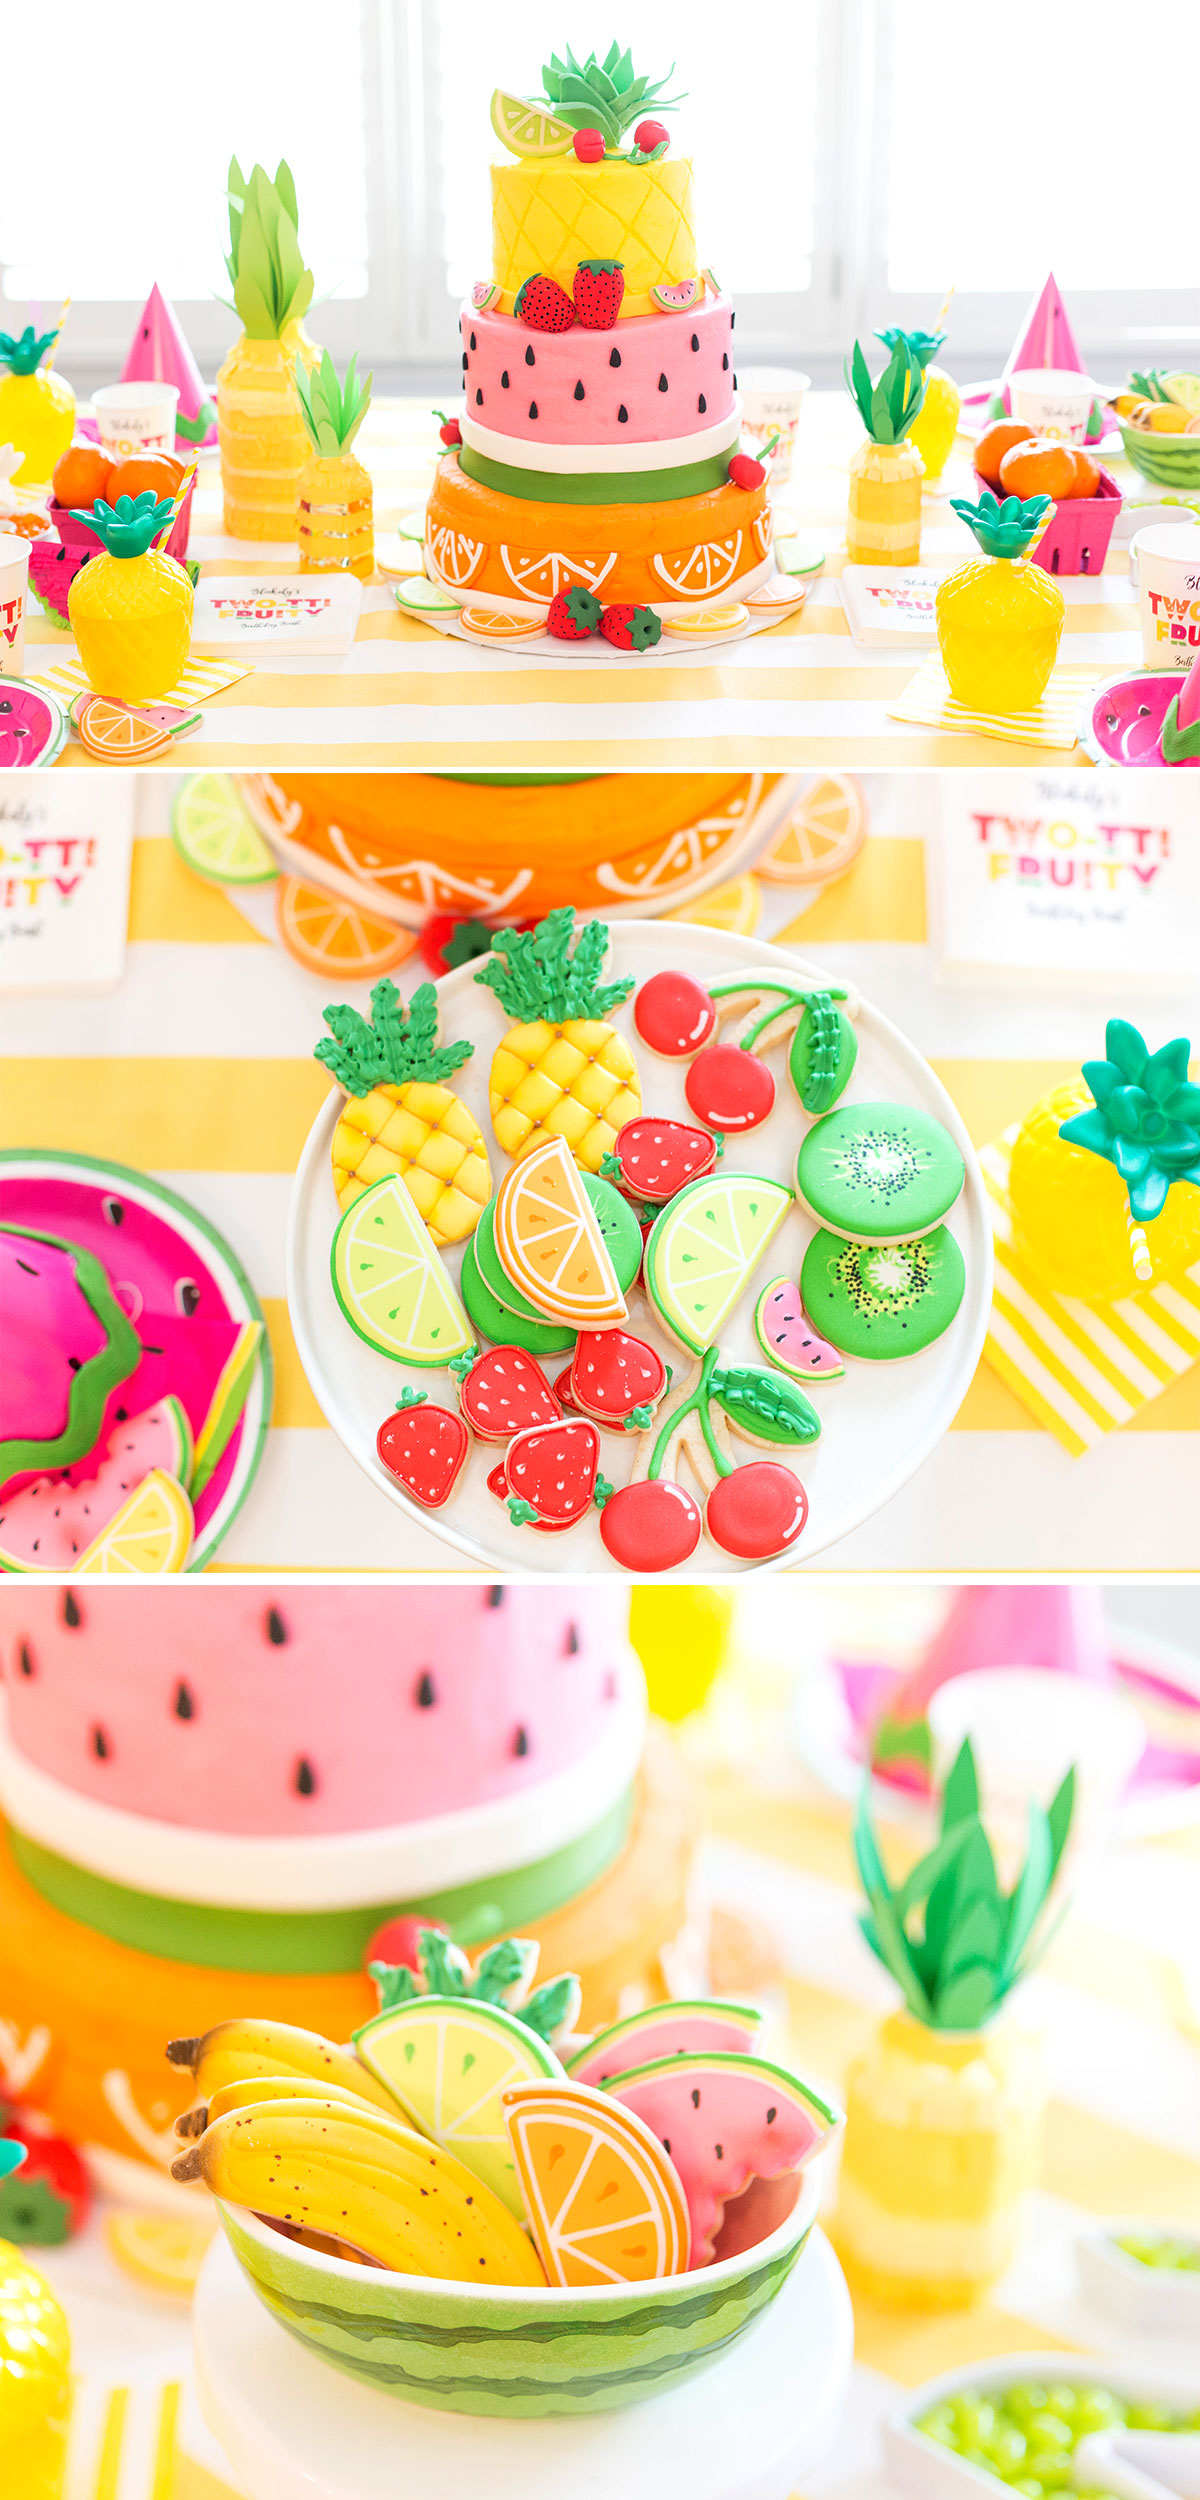 fruity-second-birthday-party-ideas.jpg